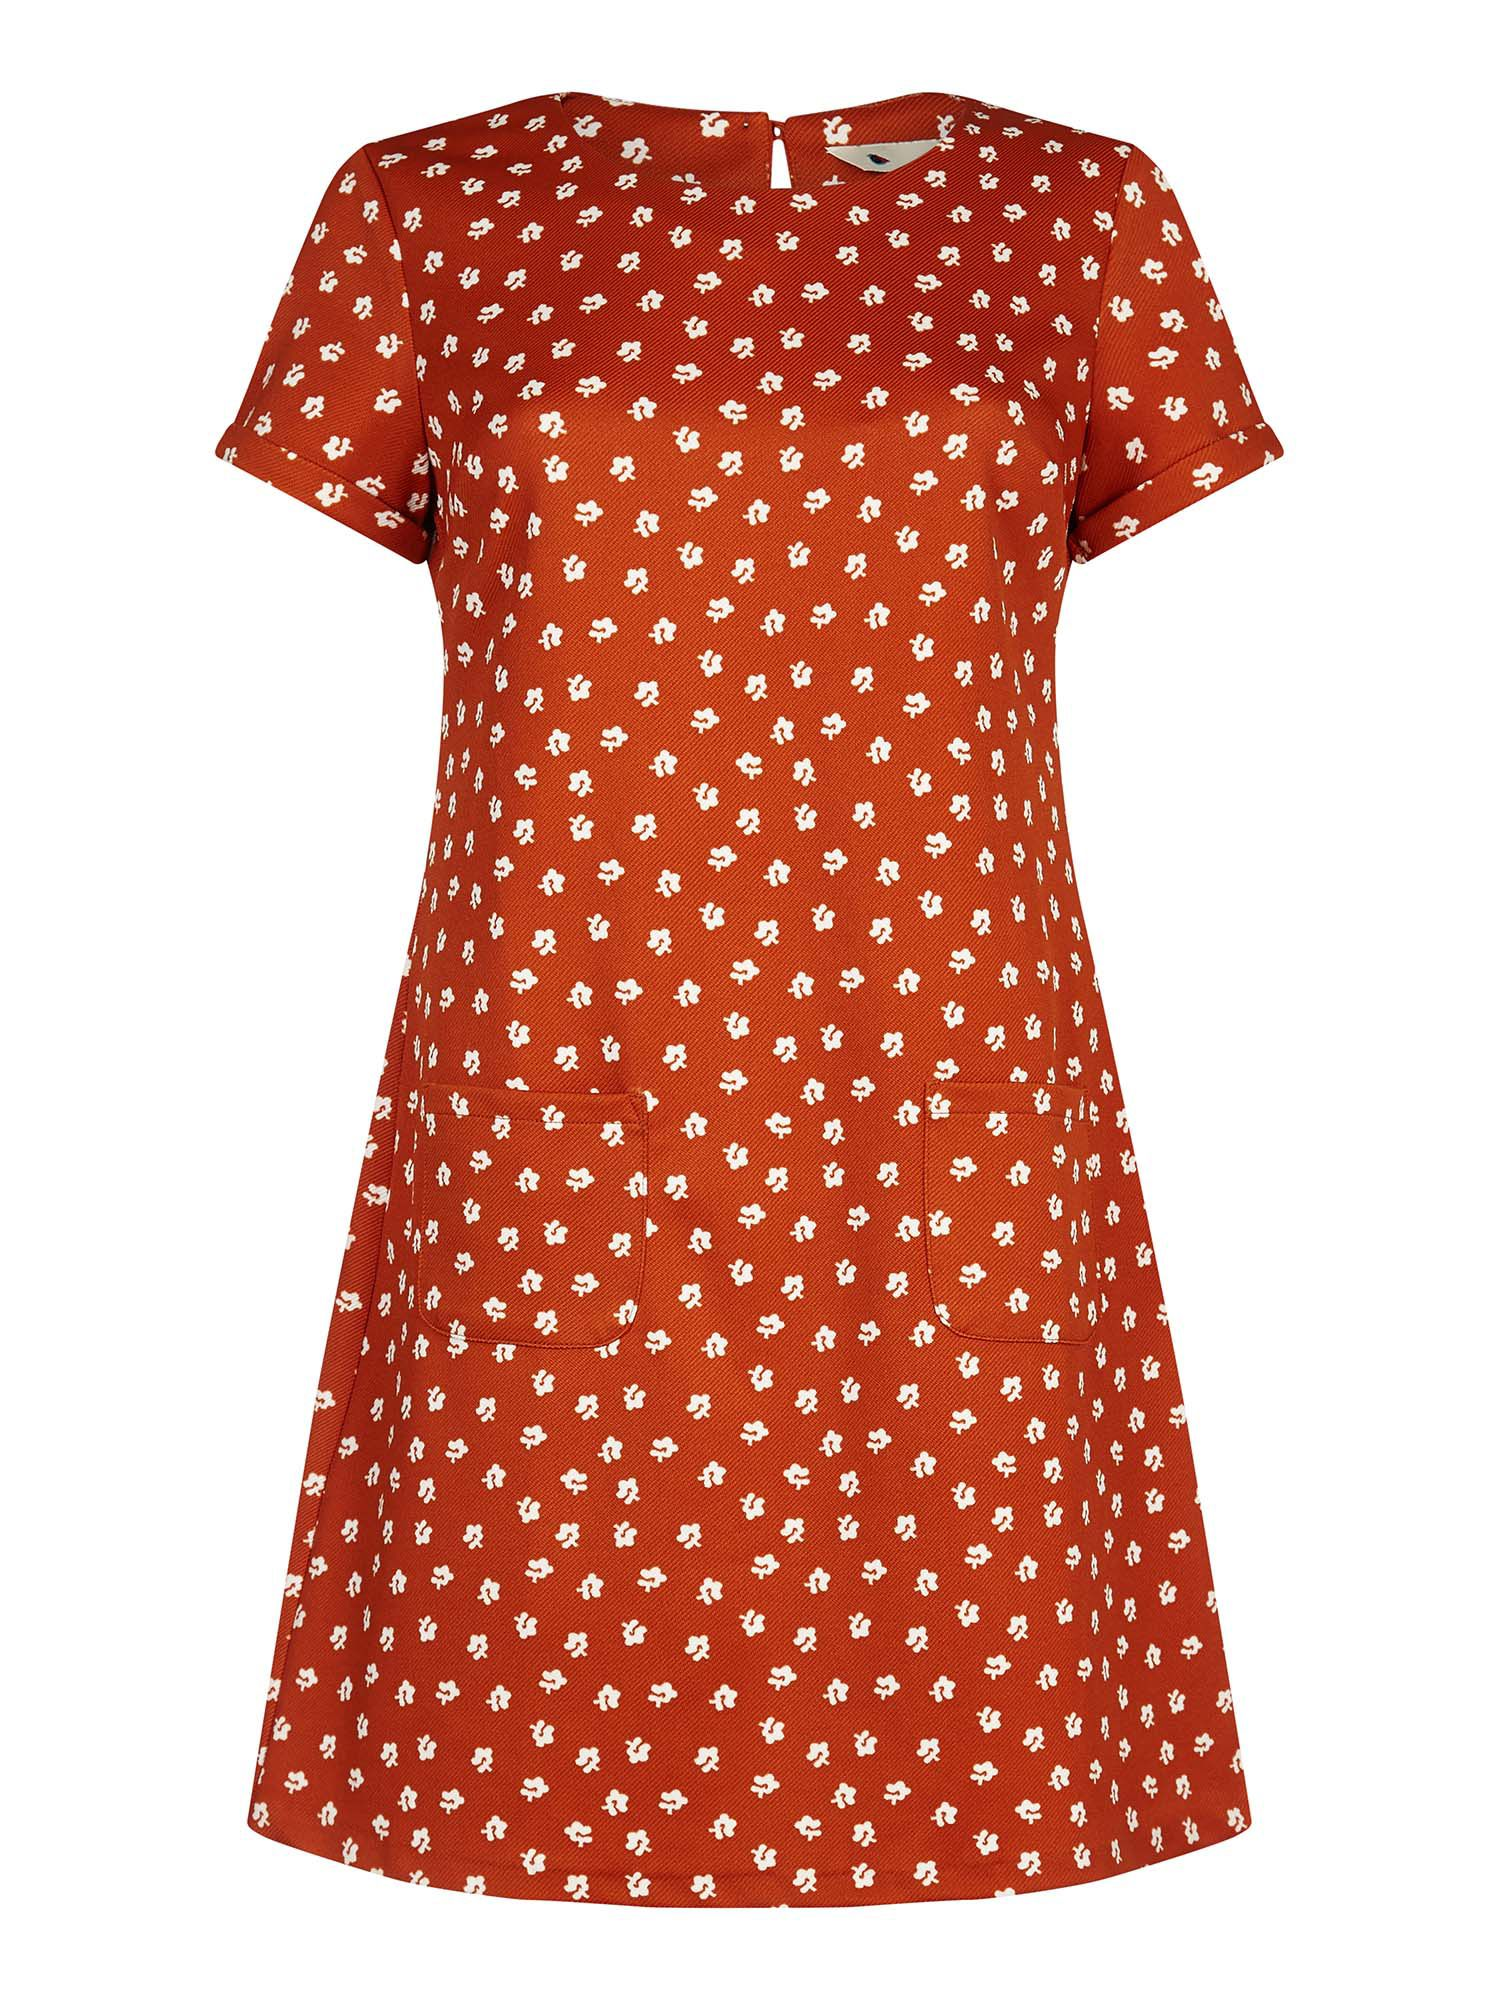 Yumi Daisy Print Tunic Dress, Orange